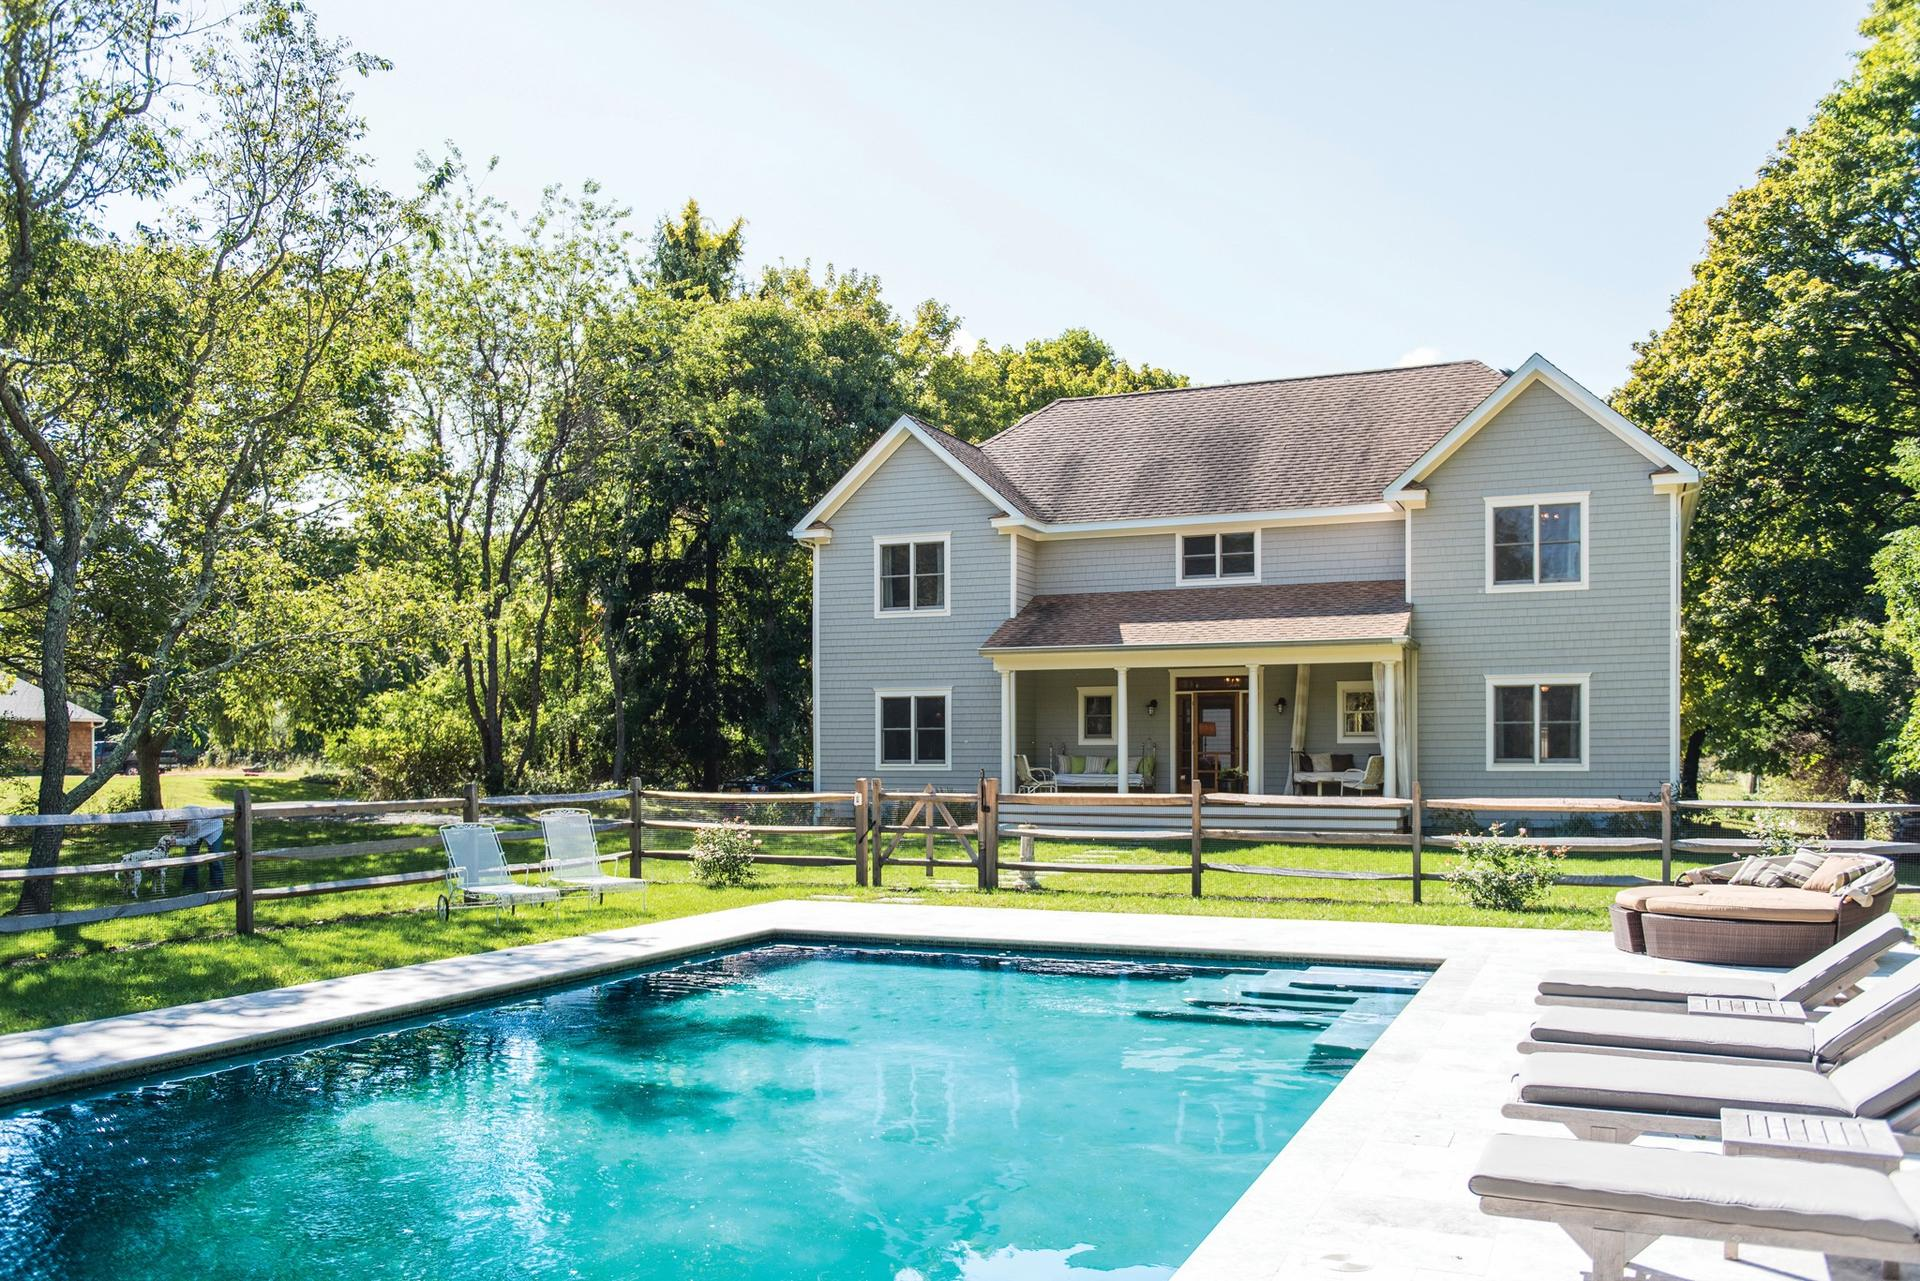 Single Family Home for Rent at Stlyish Shelter Island With Pool And Dock Shelter Island, New York